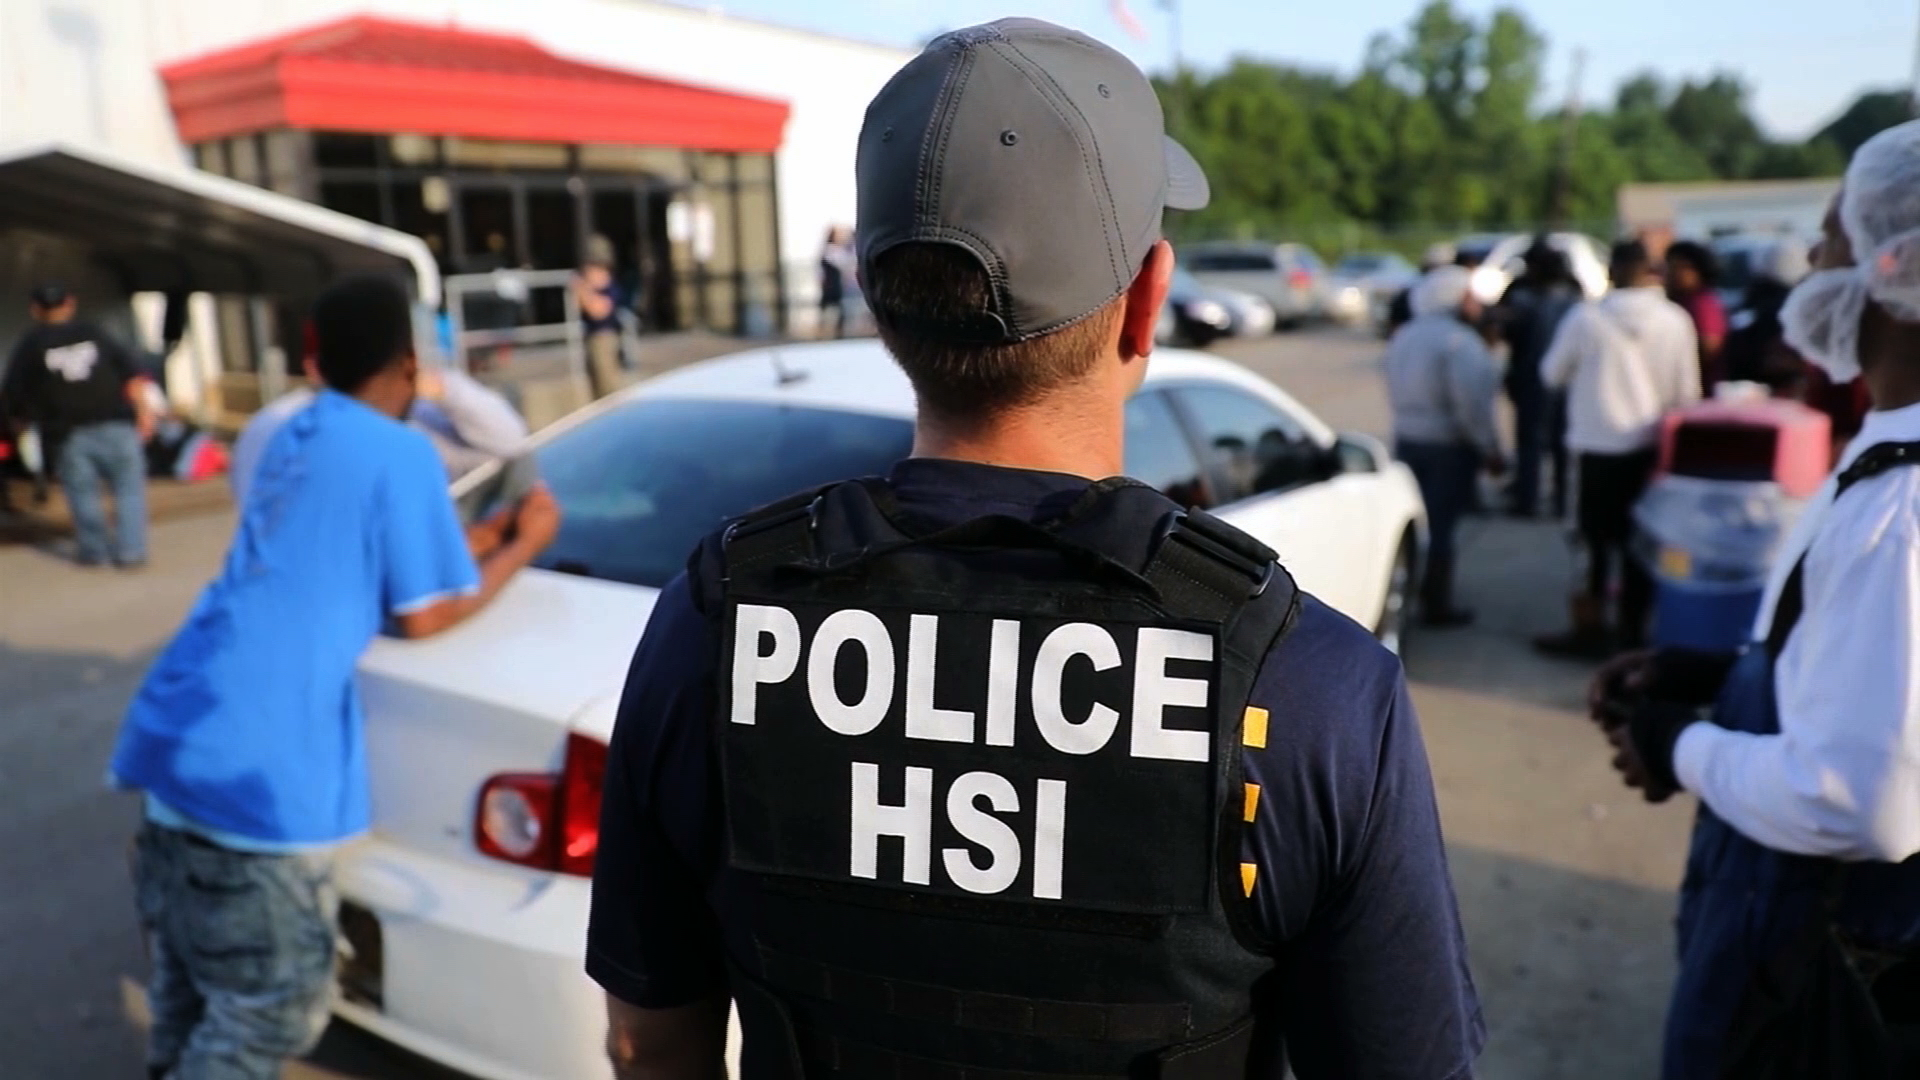 Immigration agents execute a search warrant at a processing plants plant in Mississippi as part of a series of raids in the state on Aug. 7, 2019, in an image released by the agency.